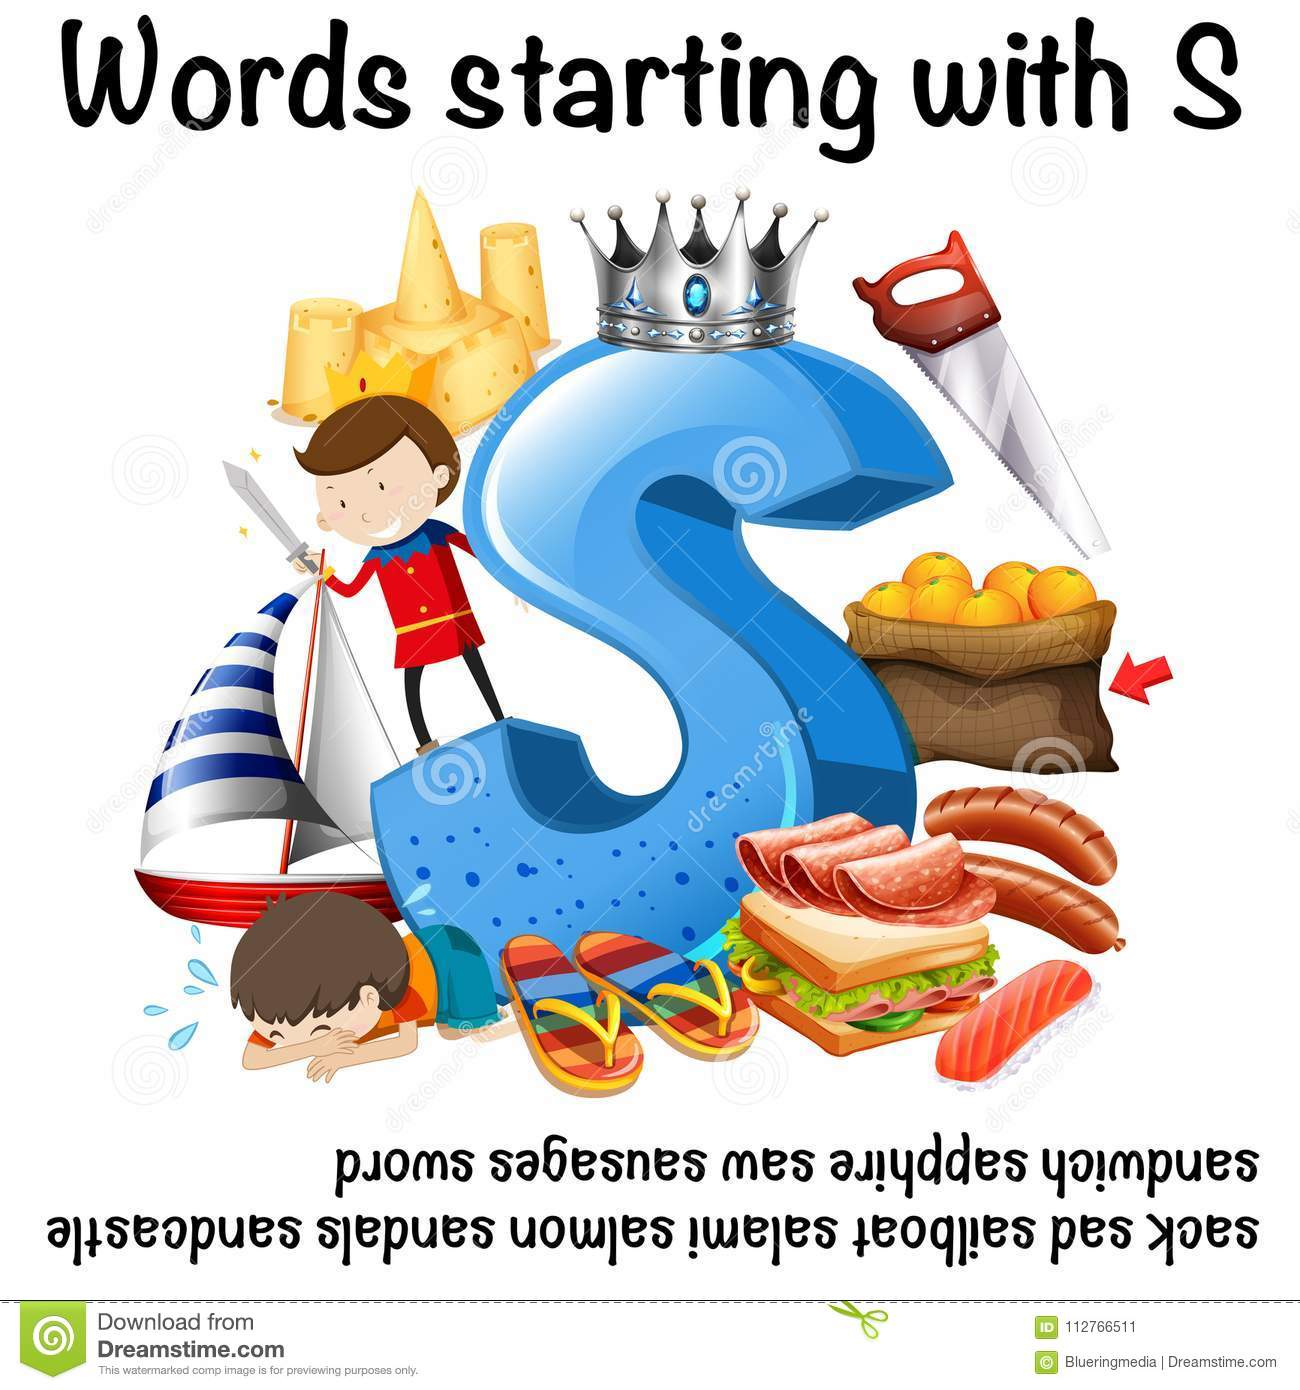 Worksheet Design For Words Starting With S Stock Vector